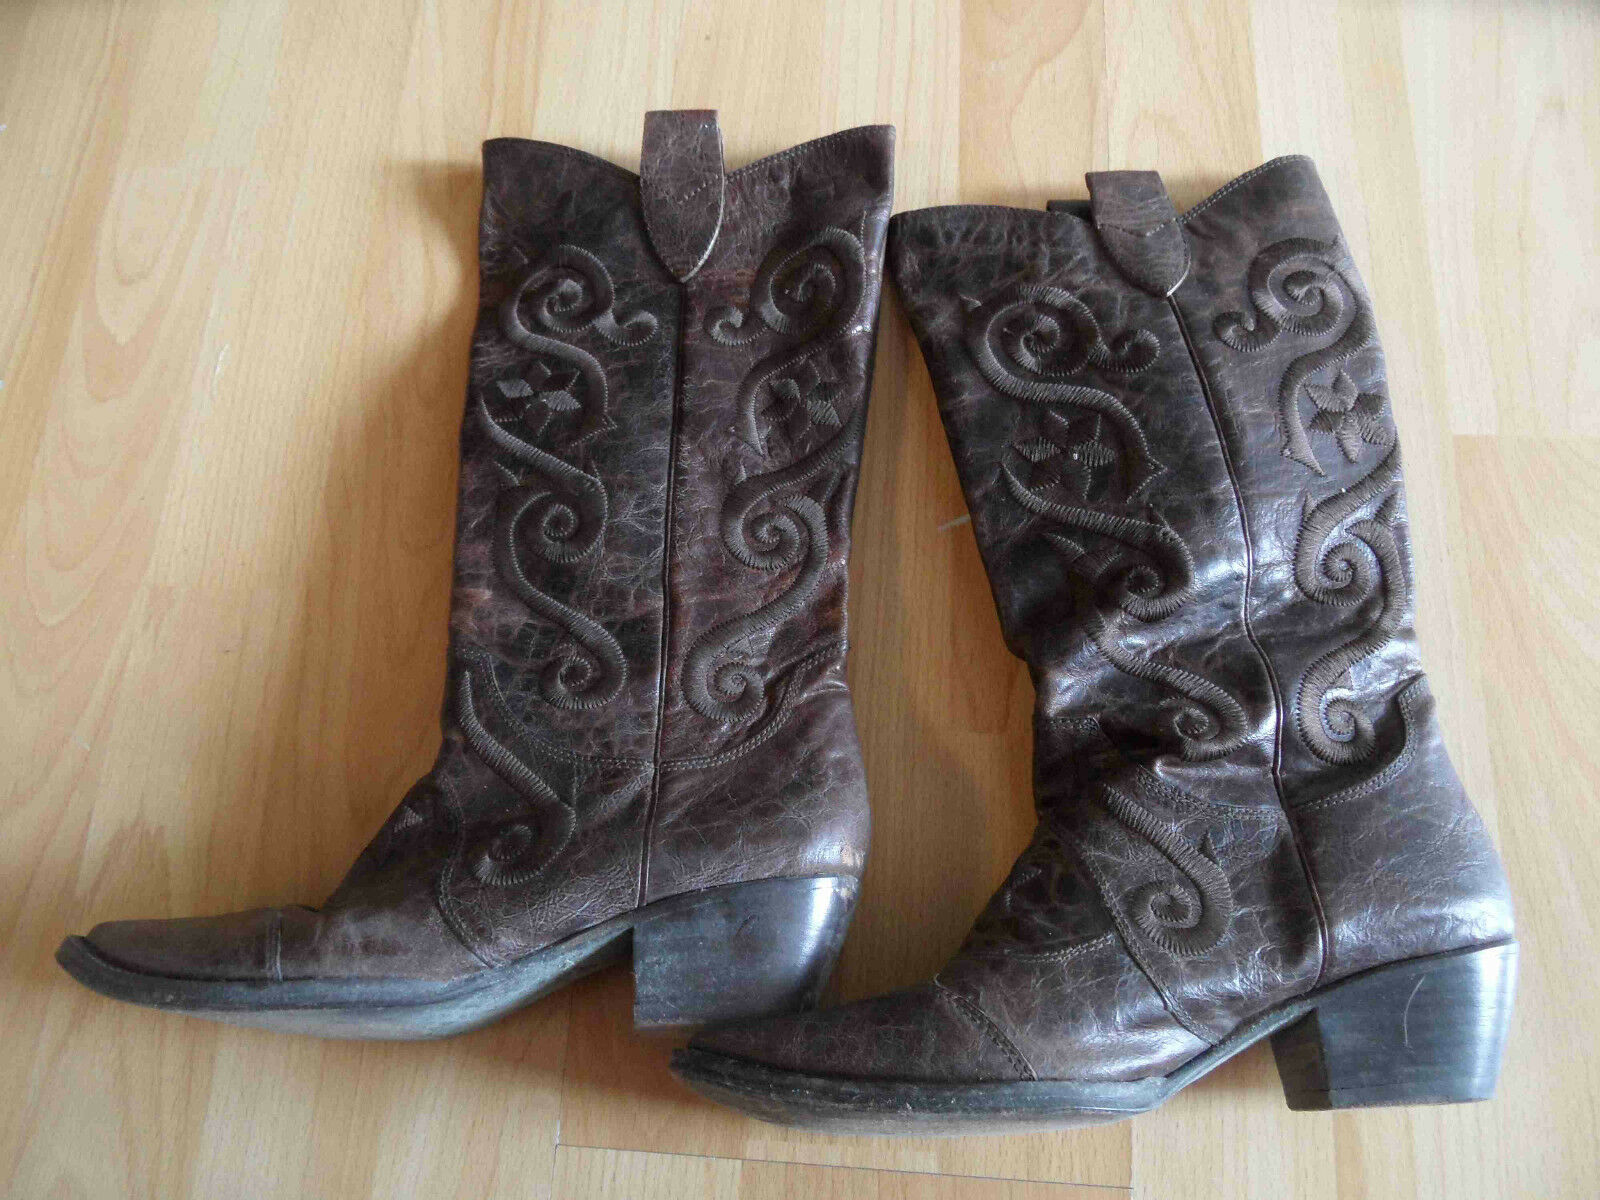 Ripicca COOL Western Stivali Cowboy Stivali Marroneee Ricamo Tg. 37 Top kb1115